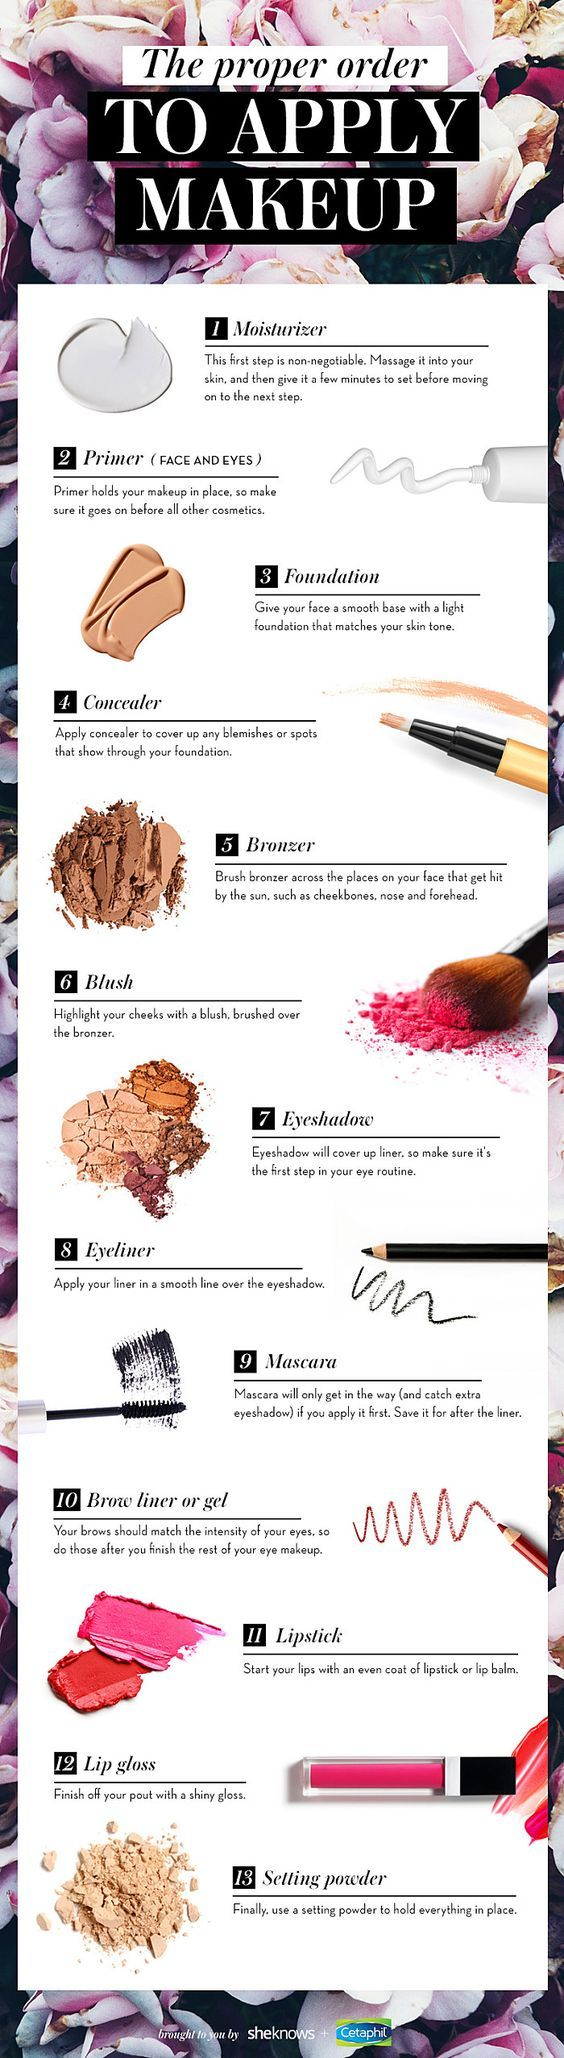 There's a correct order for applying makeup and I'm going to tell you what it is